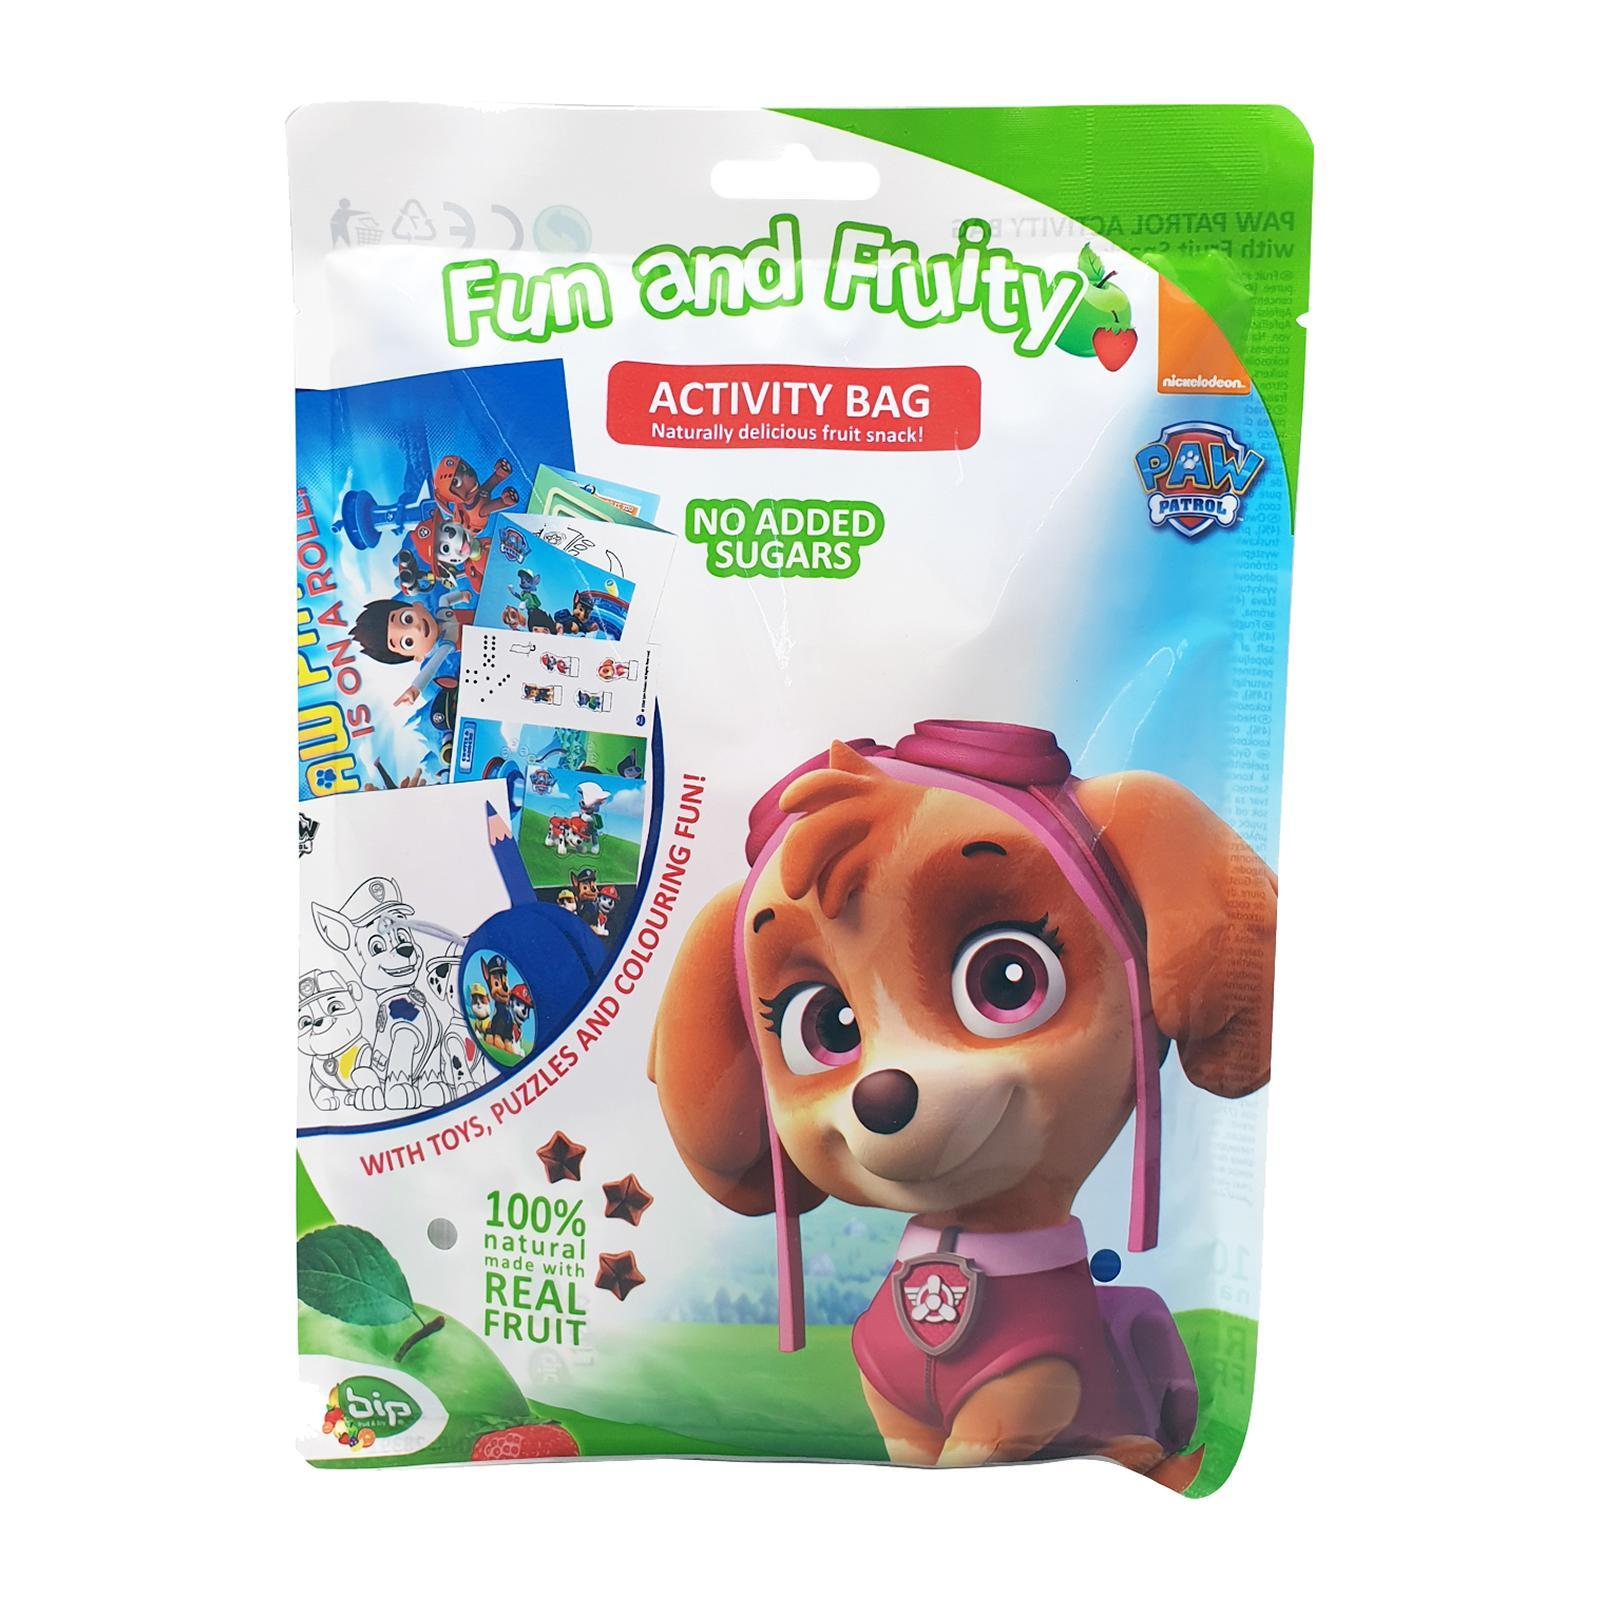 Paw Patrol Activity Bag 5g (fruit snack w/ toys puzzles and colouring fun) - Skye